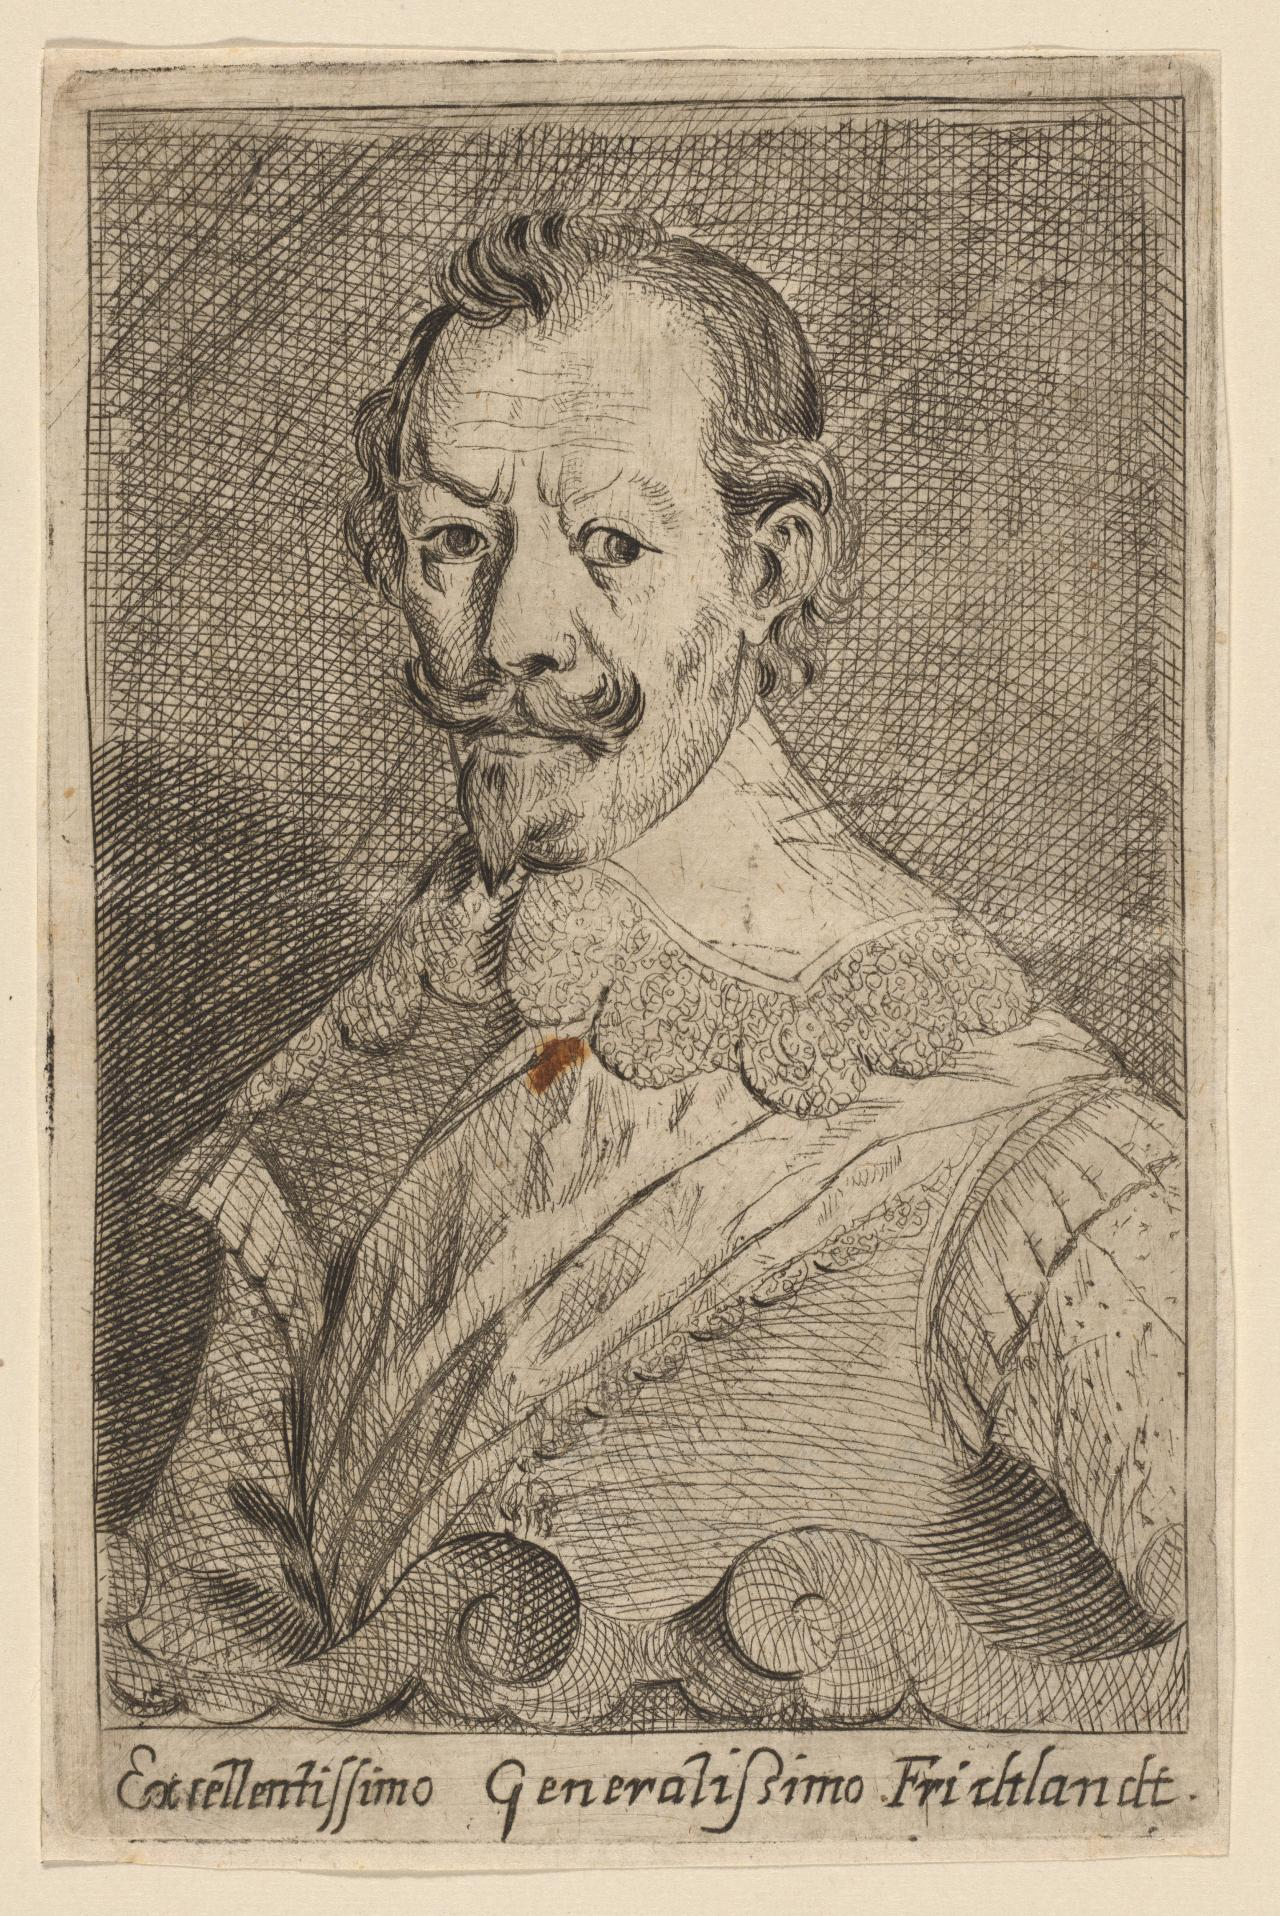 General Albert Wallenstein, Duc de Friedland